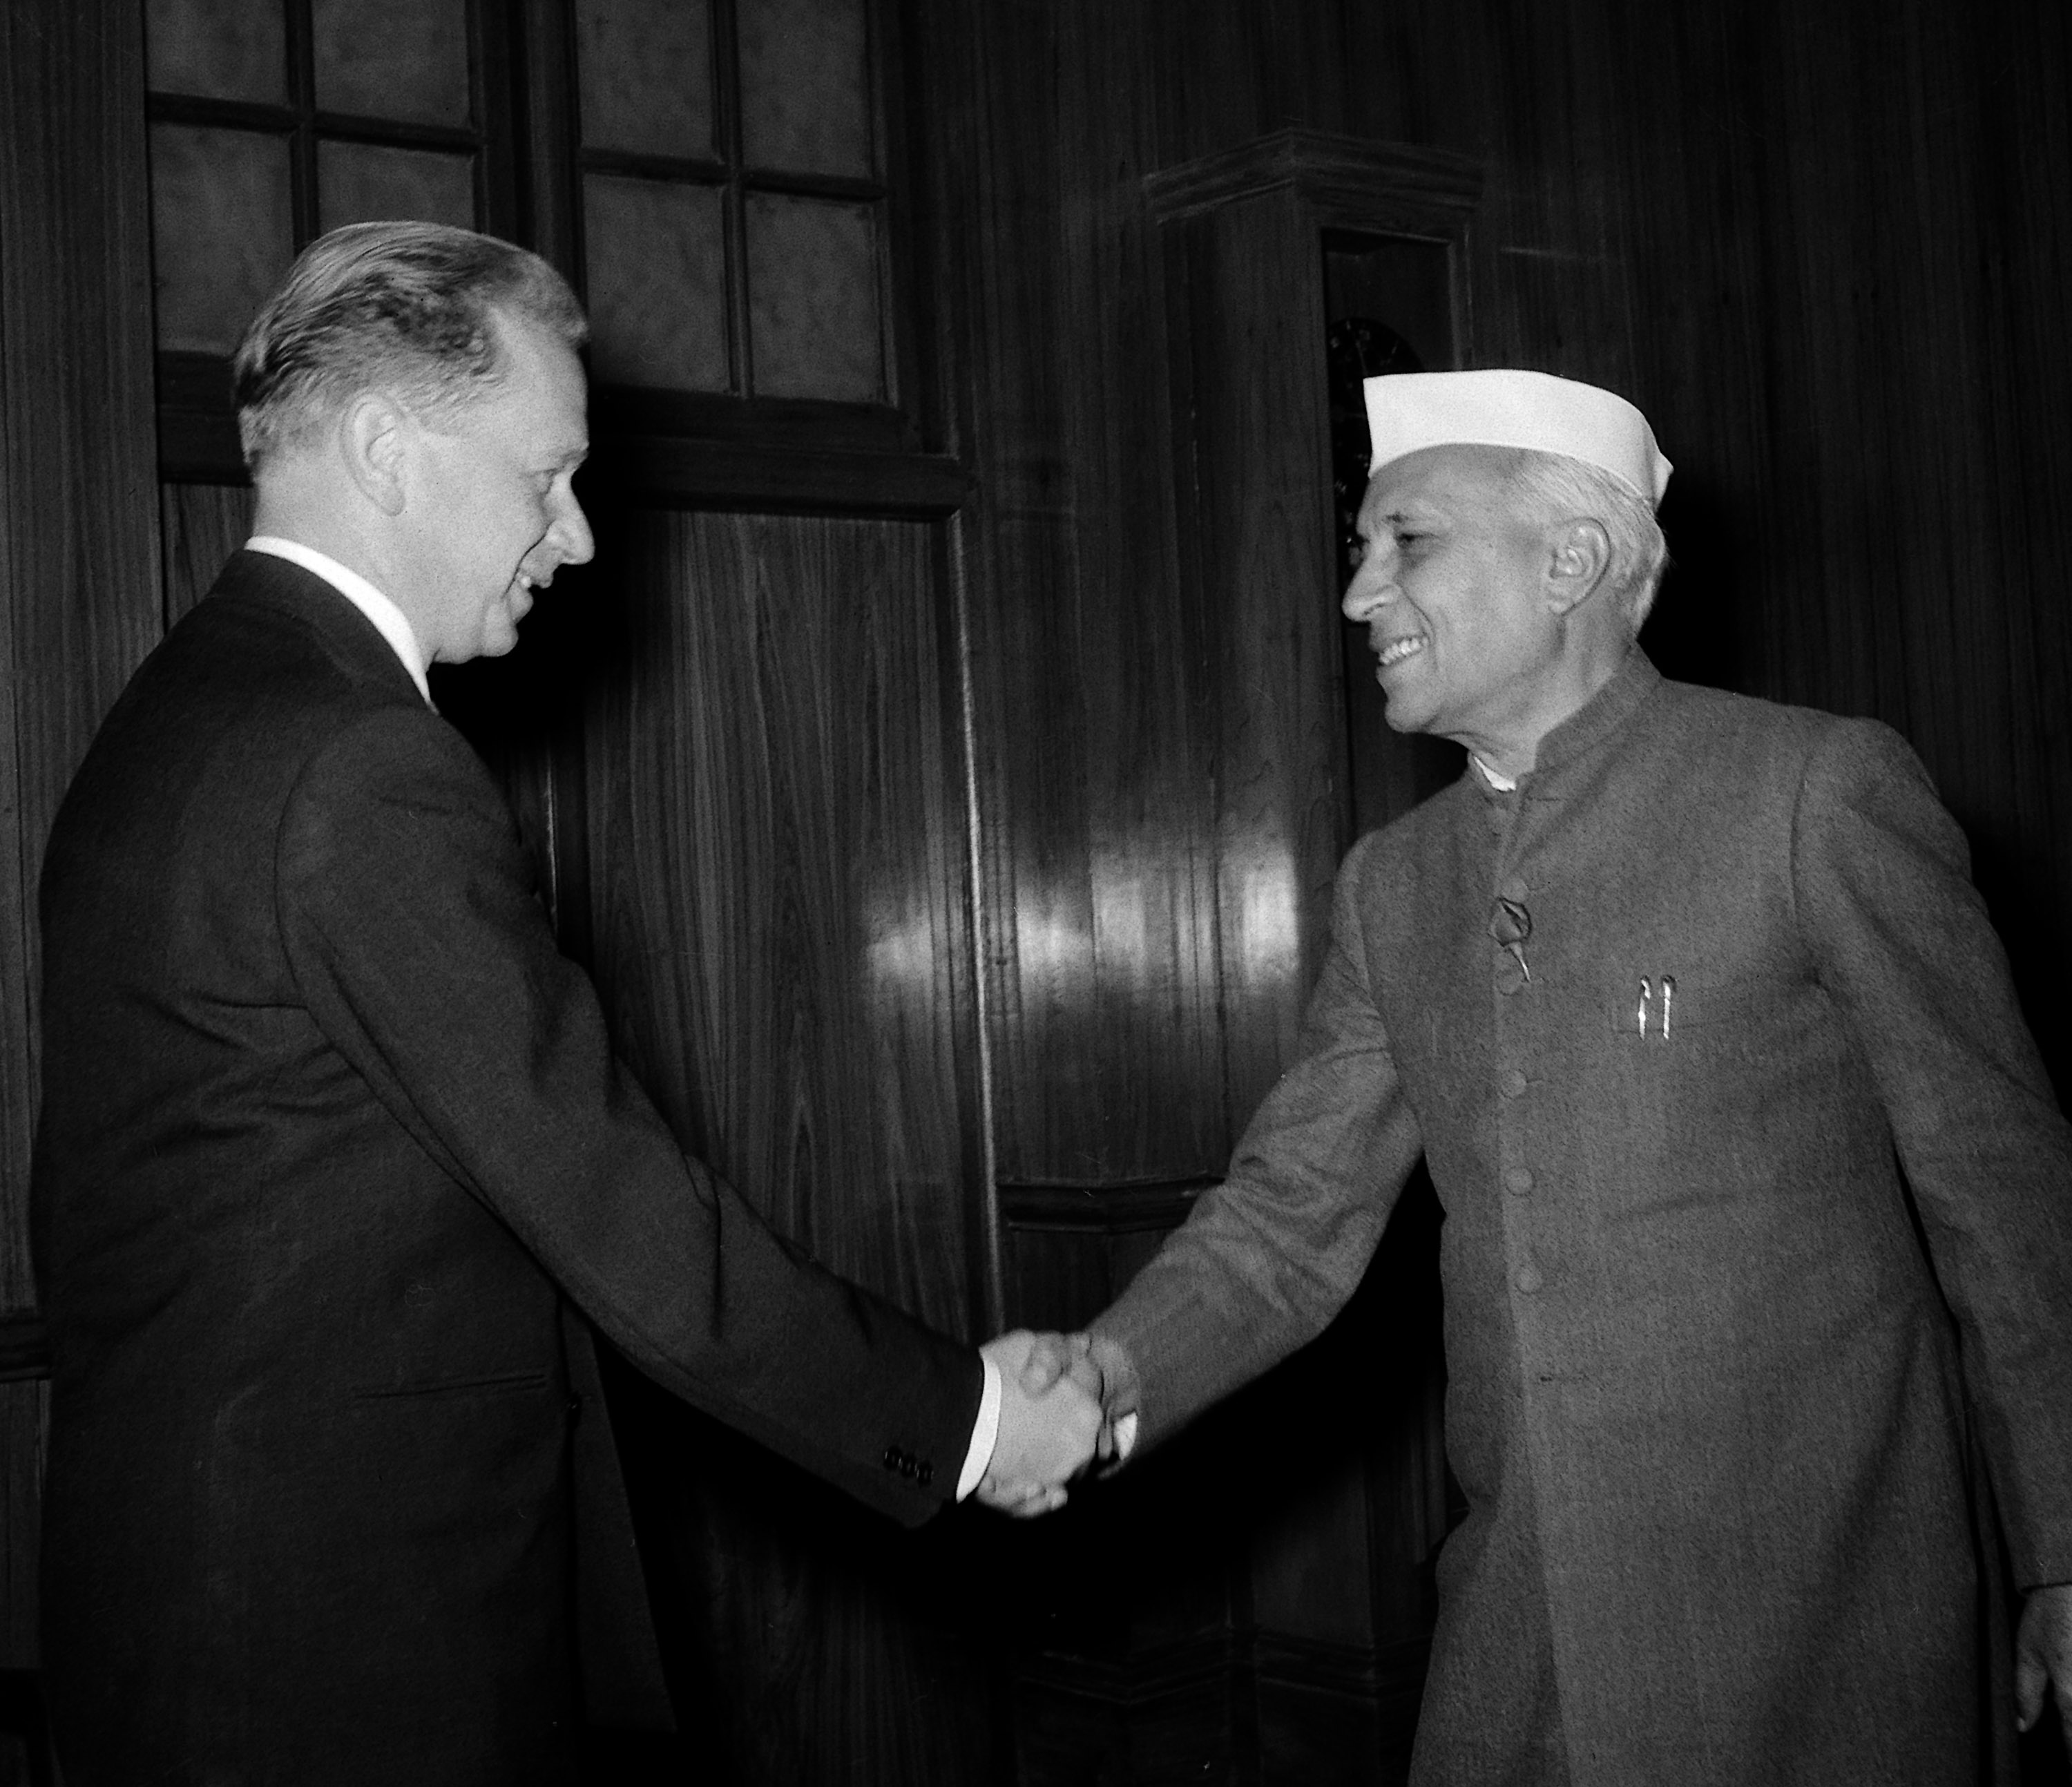 Secretary-General Dag Hammarskjöld (left) meets with Jawaharlal Nehru, Prime Minister of India in January 1955. Source: United Nations Photo